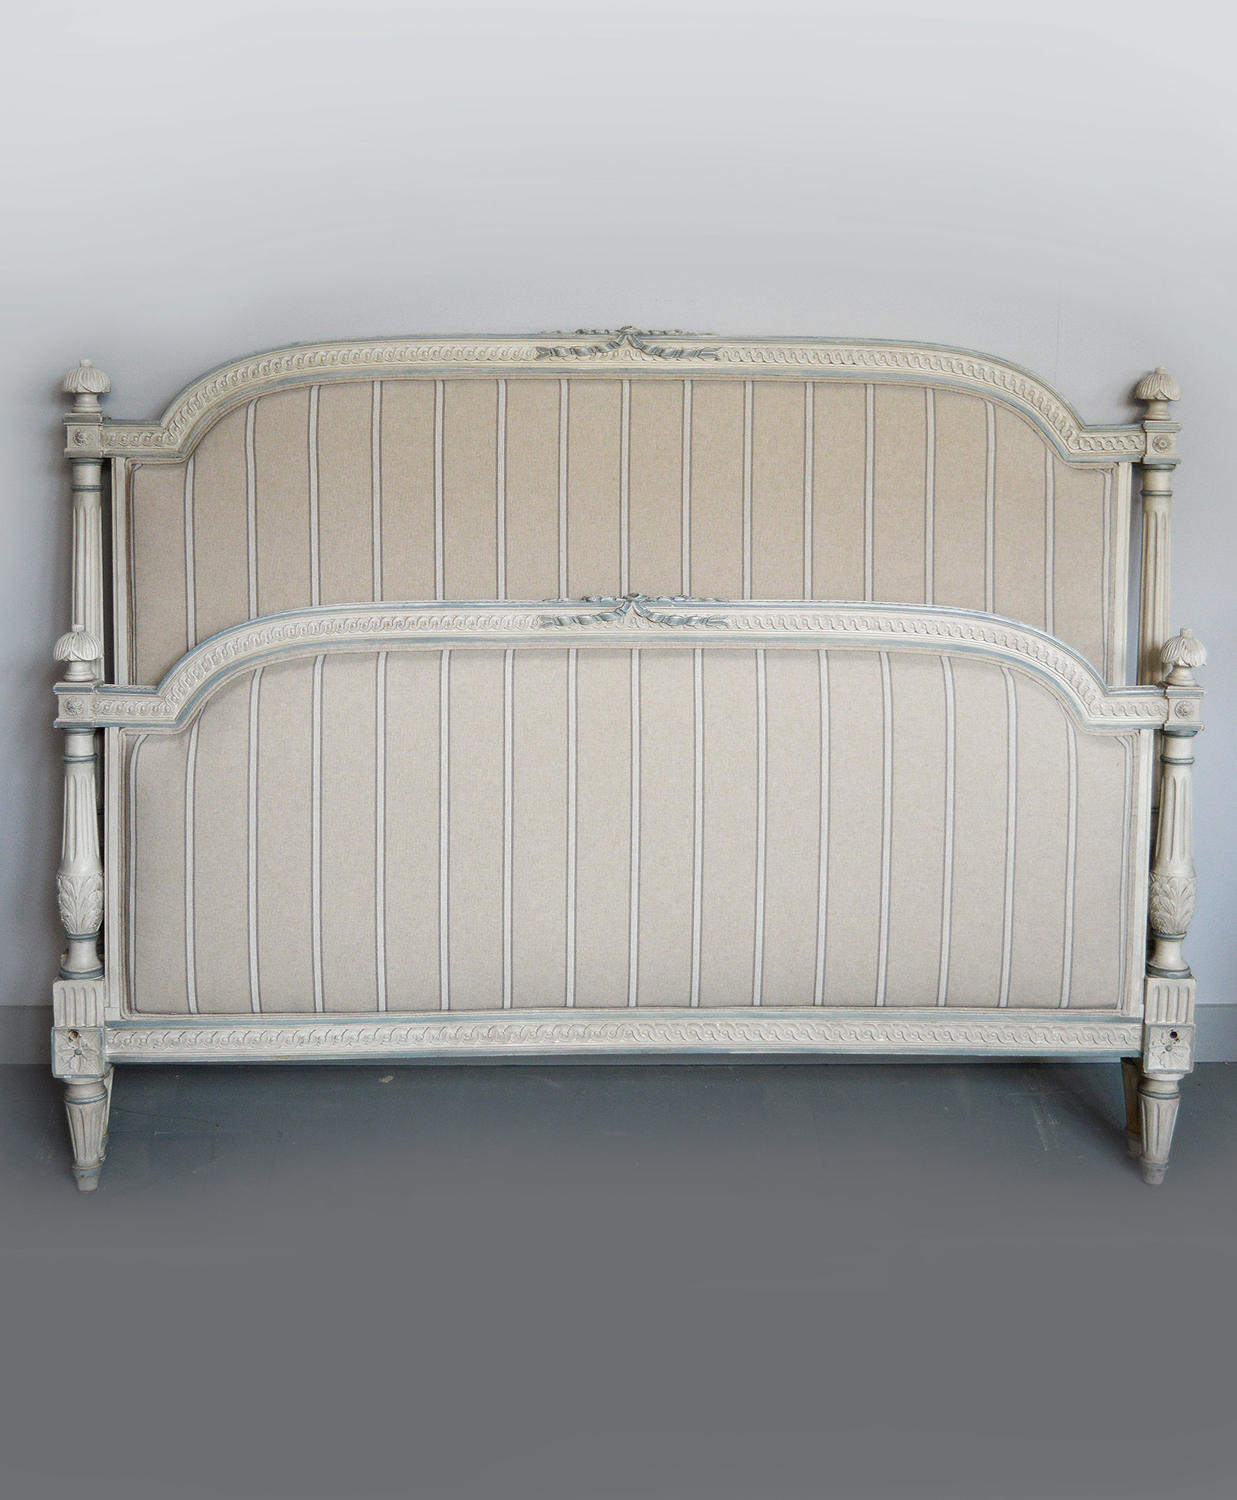 Louis XVI style King size Upholstered bedstead